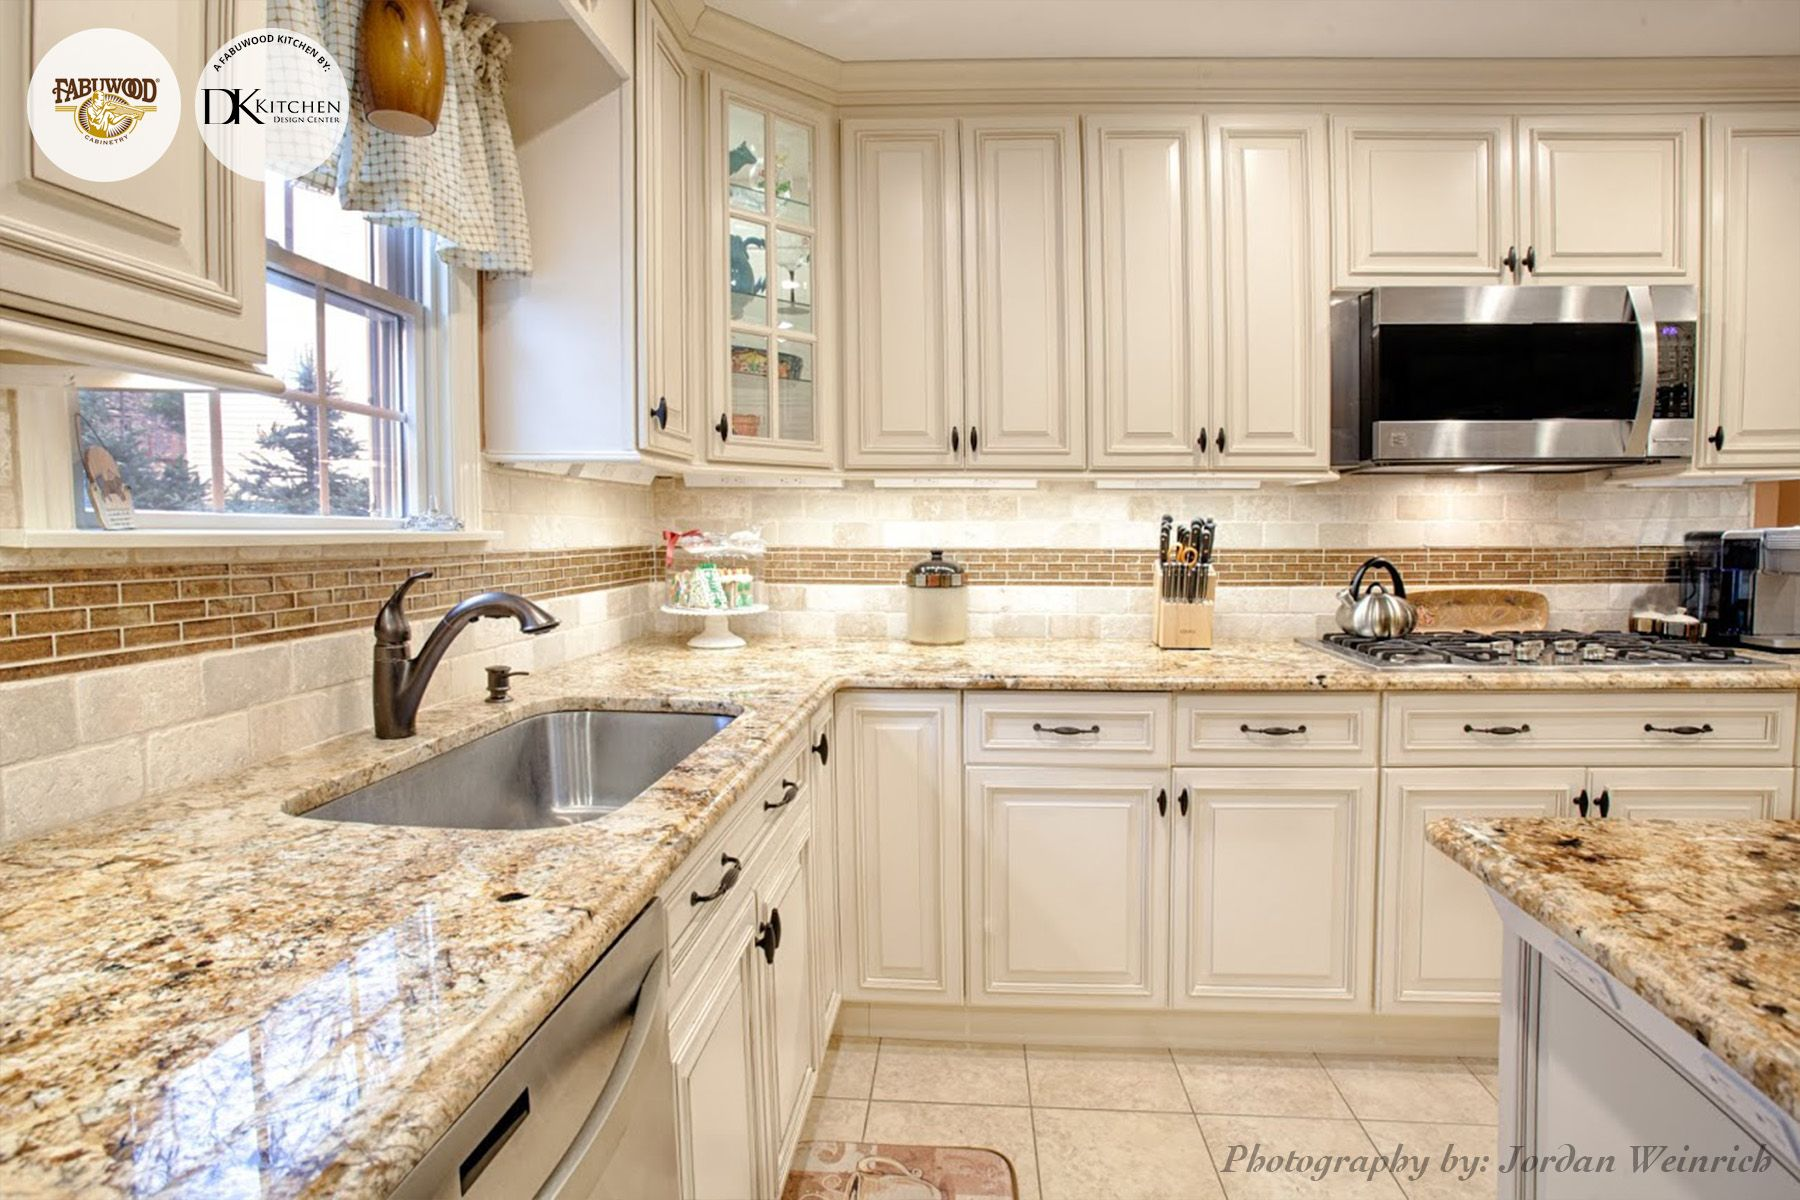 Another stunning view of the Wellington kitchen in Ivory